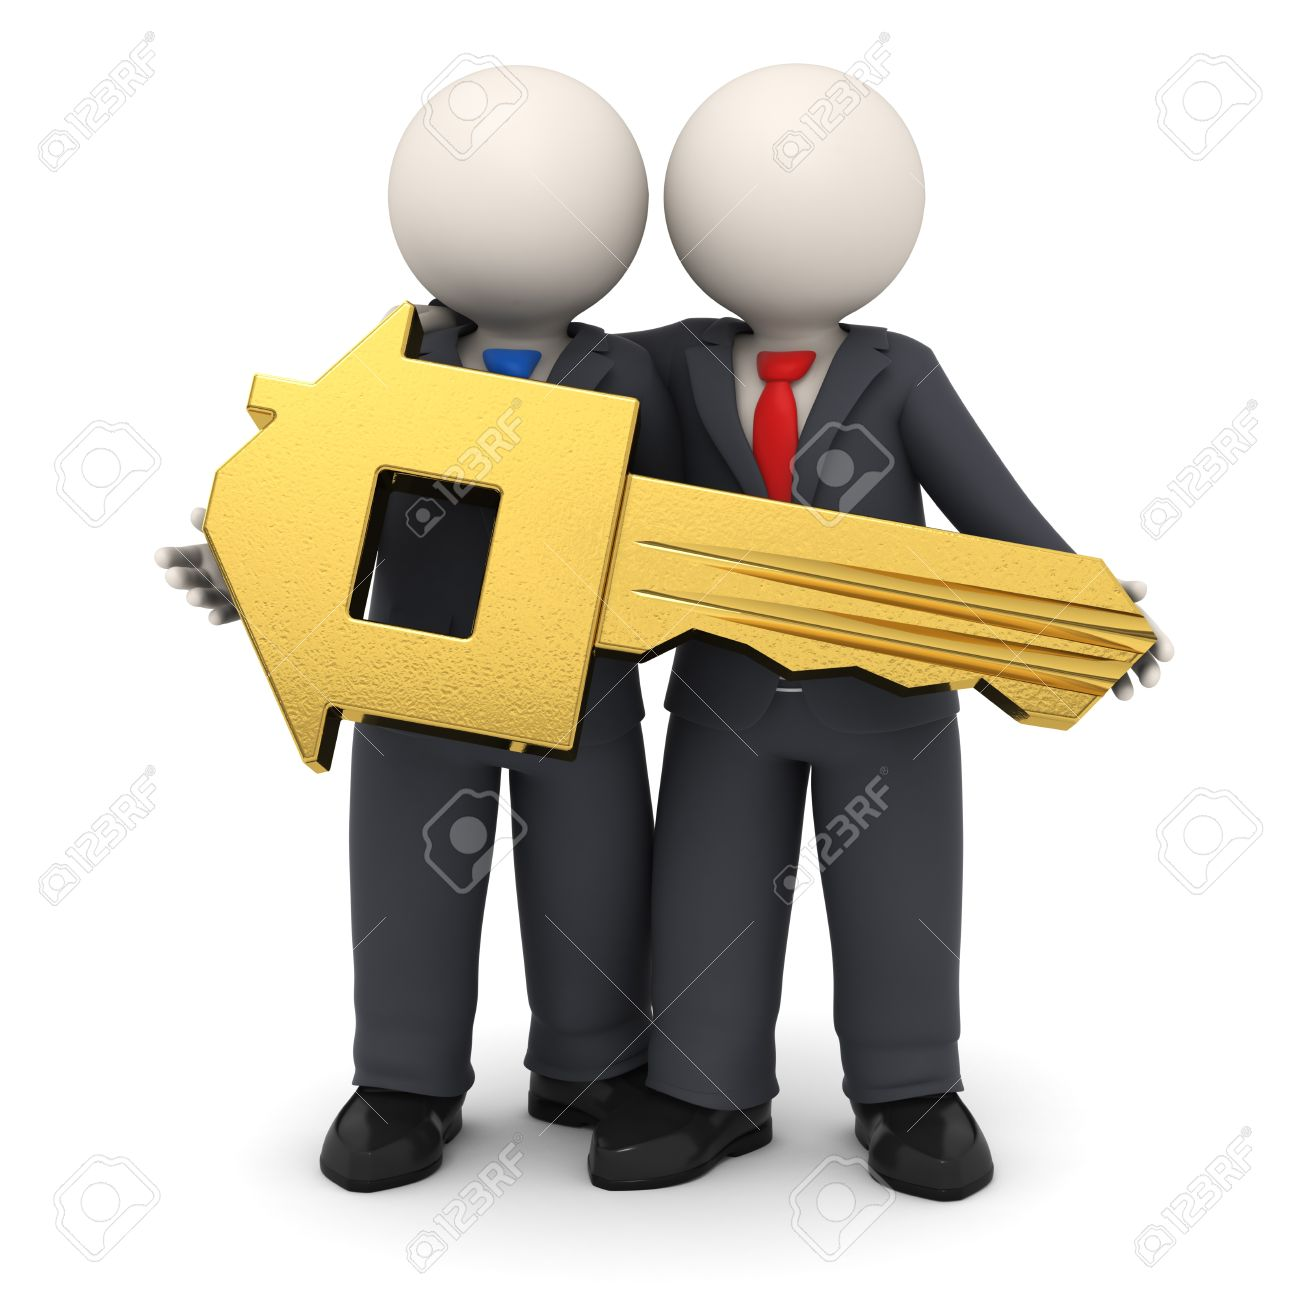 With golden key 3d rendering plan concept with golden key 3d rendering - 3d Rendered Business Partners In Black Suit Holding A Gold House Key In Their Hands